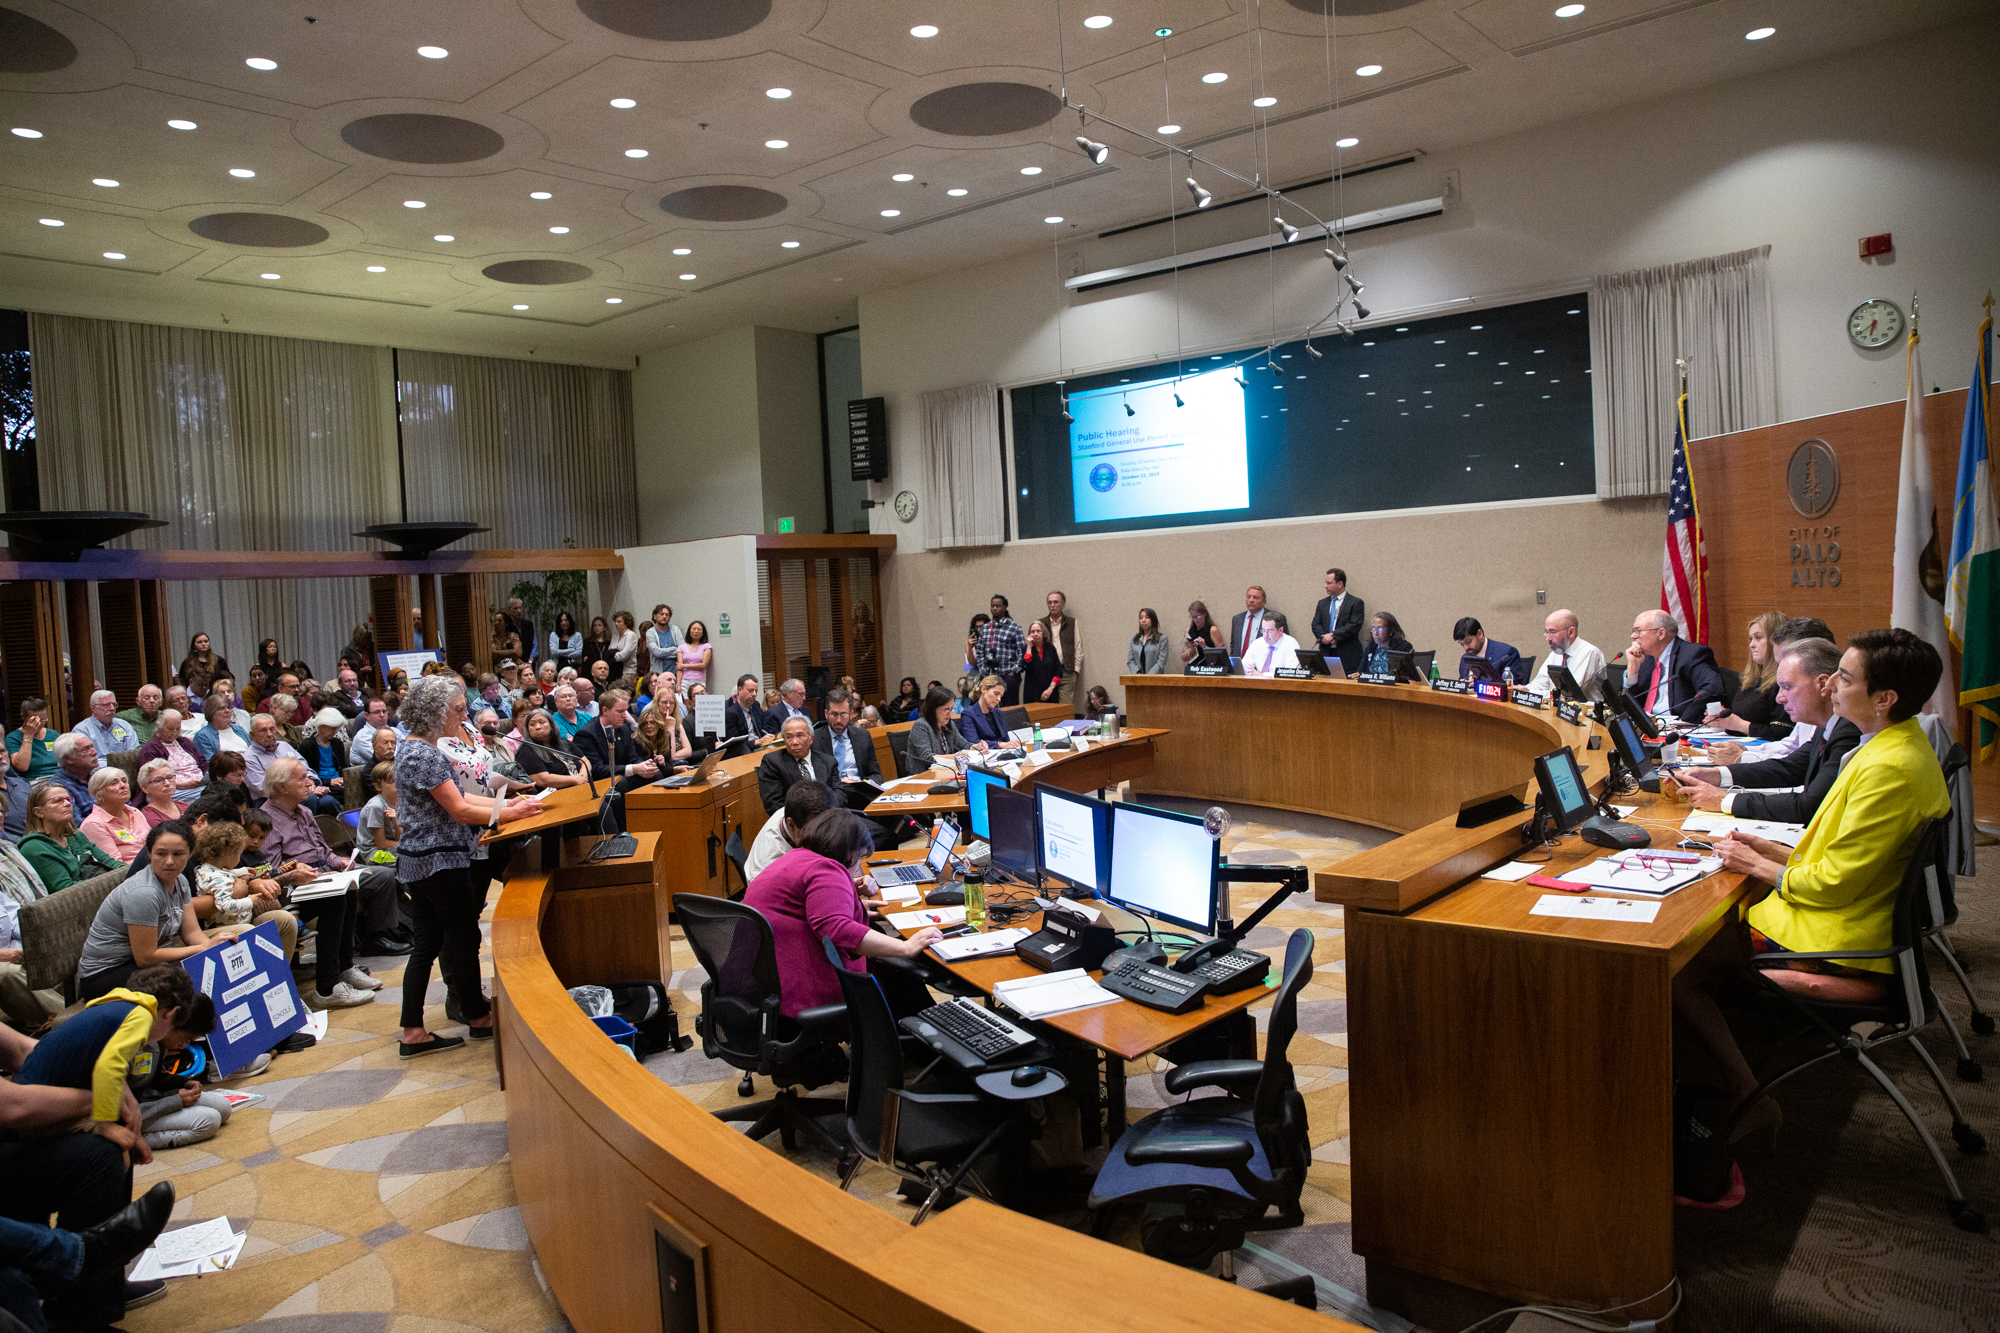 Local elected leaders address the Santa Clara County Board of Supervisors during a hearing on Stanford University's expansion plan at Palo Alto City Hall on Oct. 22. Photo by Magali Gauthier.